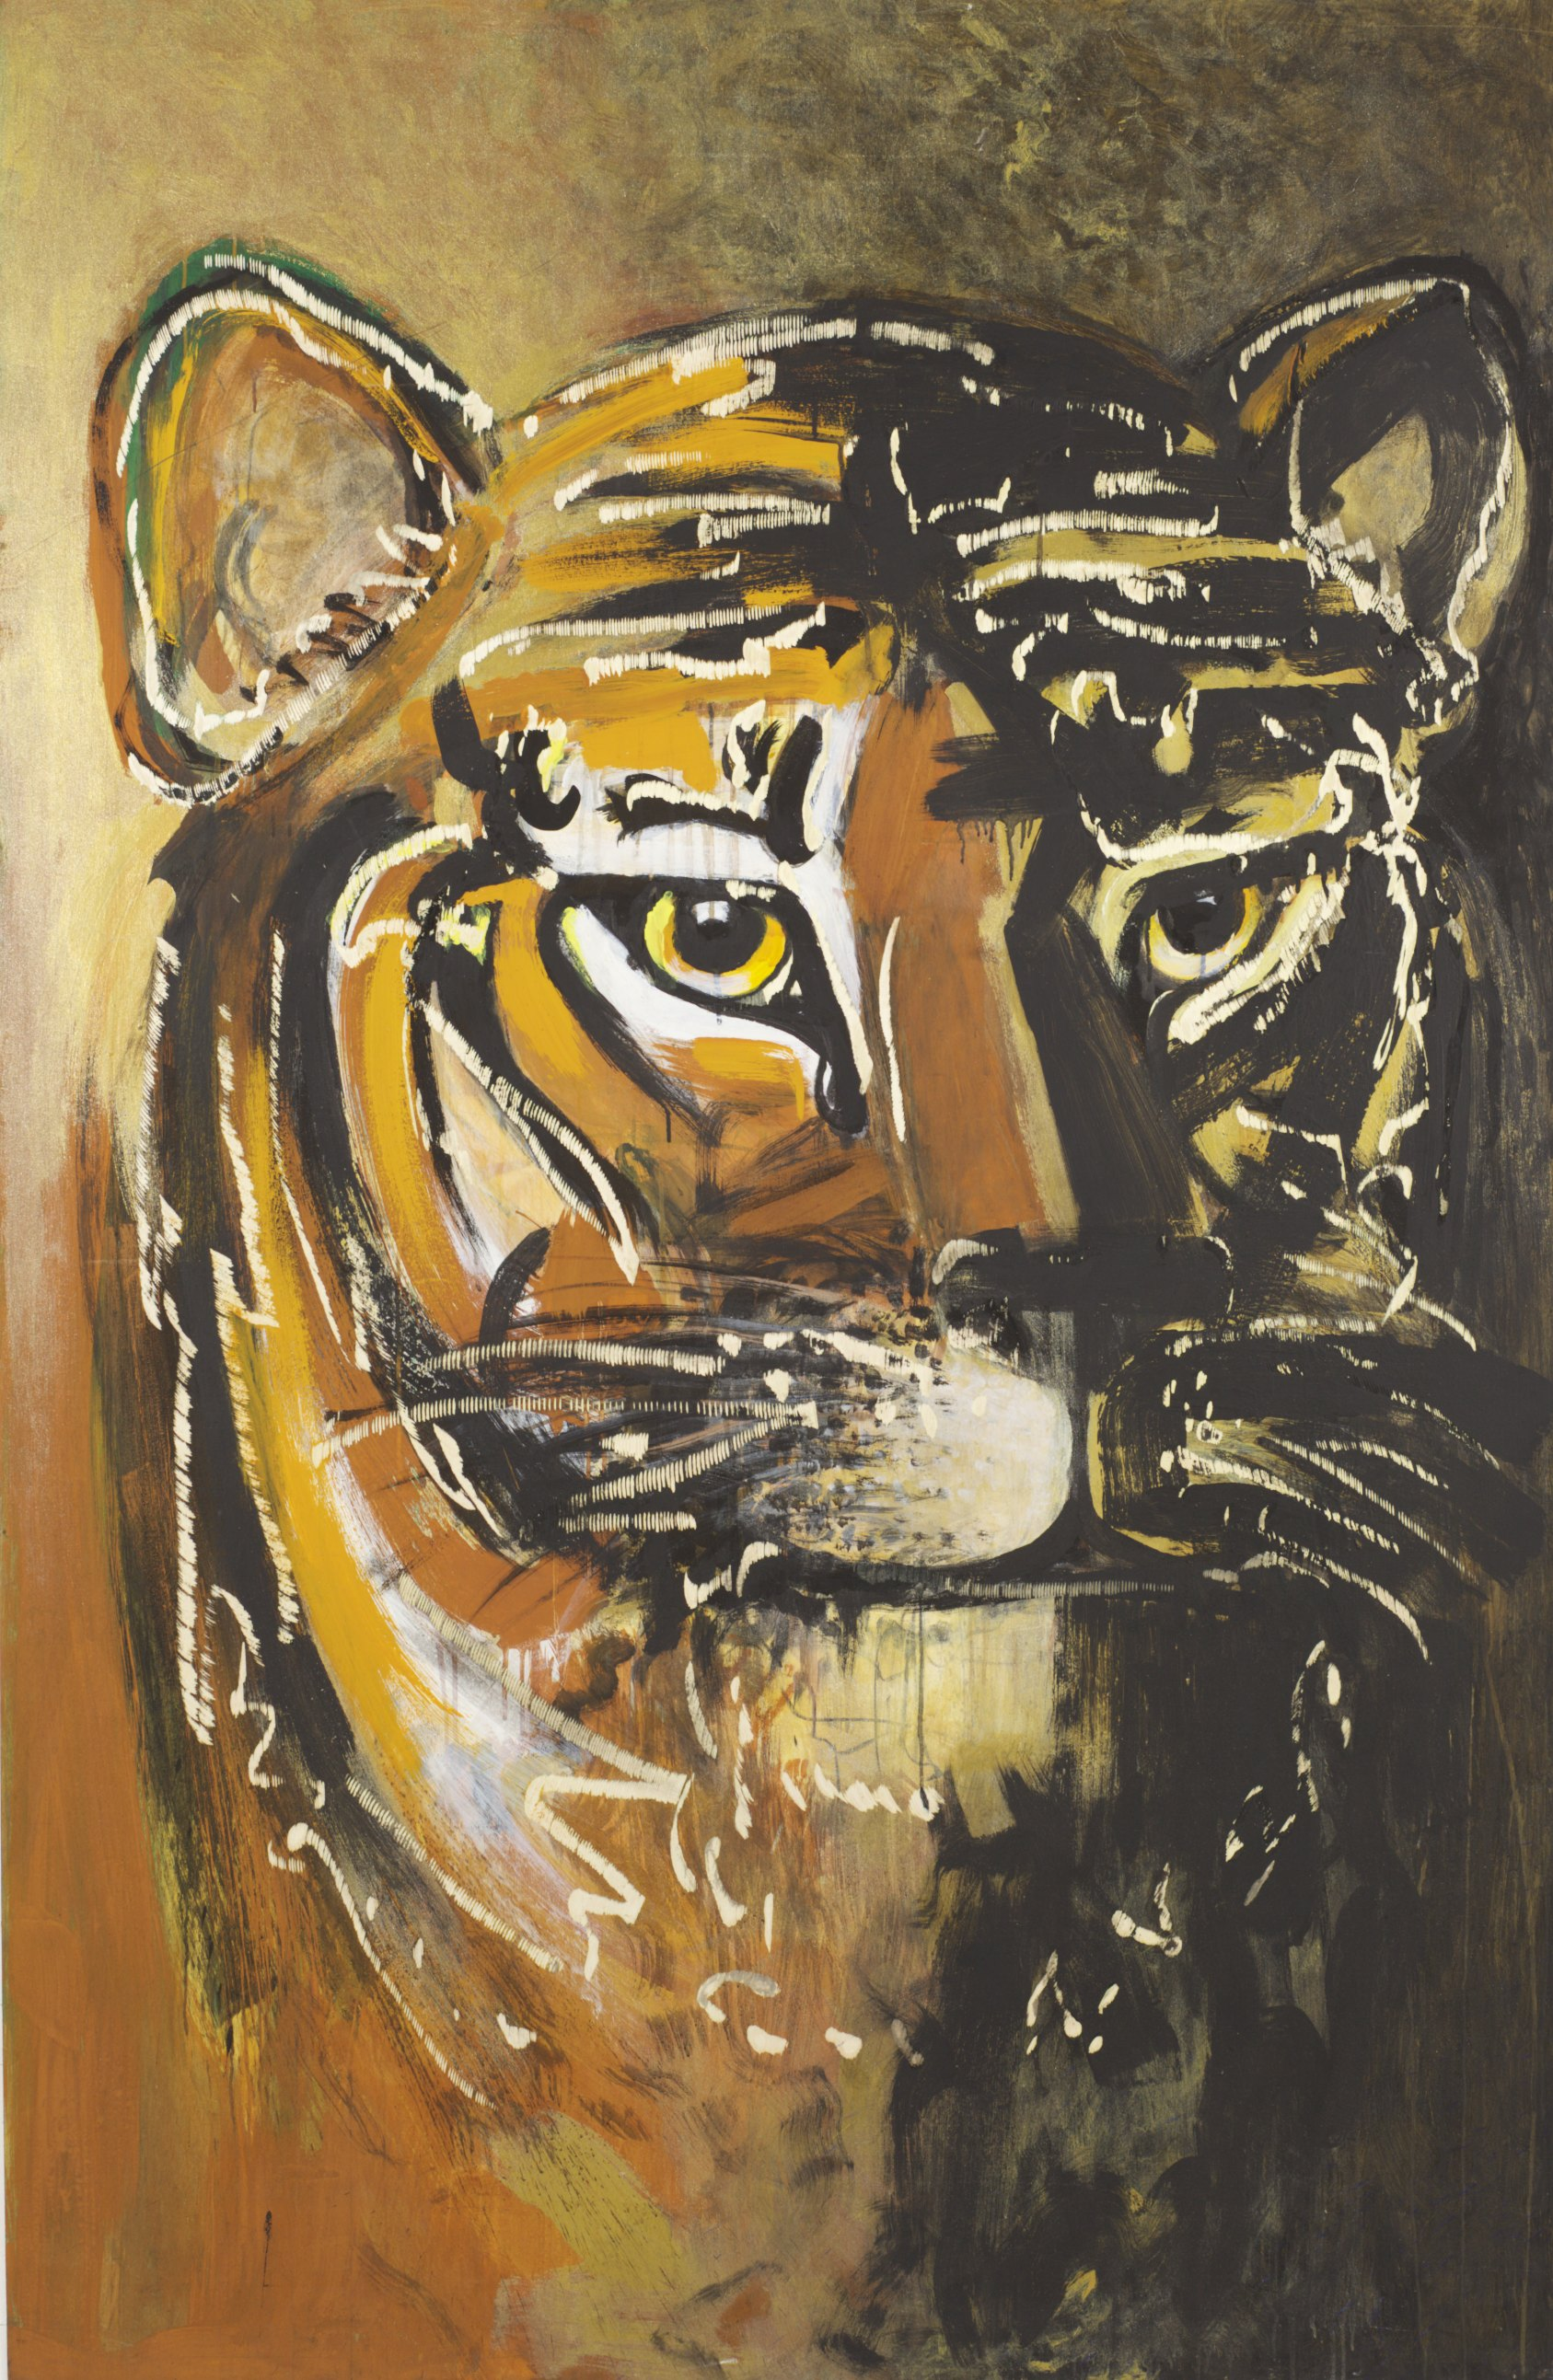 Dieter Finke | Untitled (Tiger) | about 2000 | acrylic and wood engraving | 204 x 134 cm